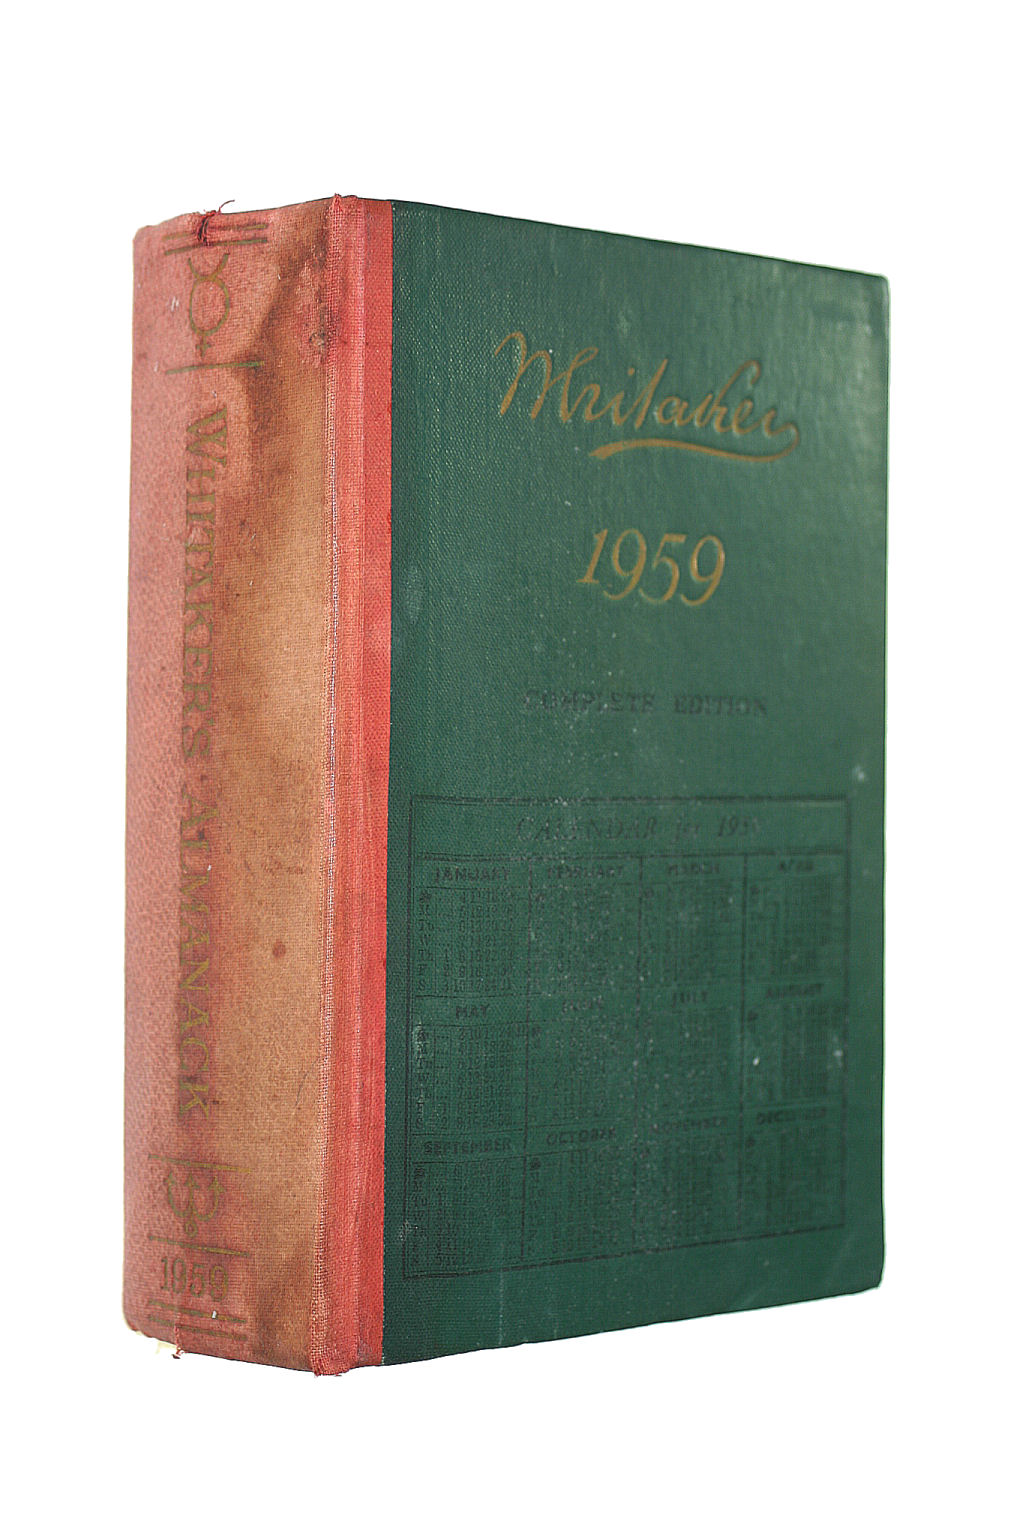 Image for Whitaker's Almanac 1959 (Complete Edition 1959, 91St Edition)